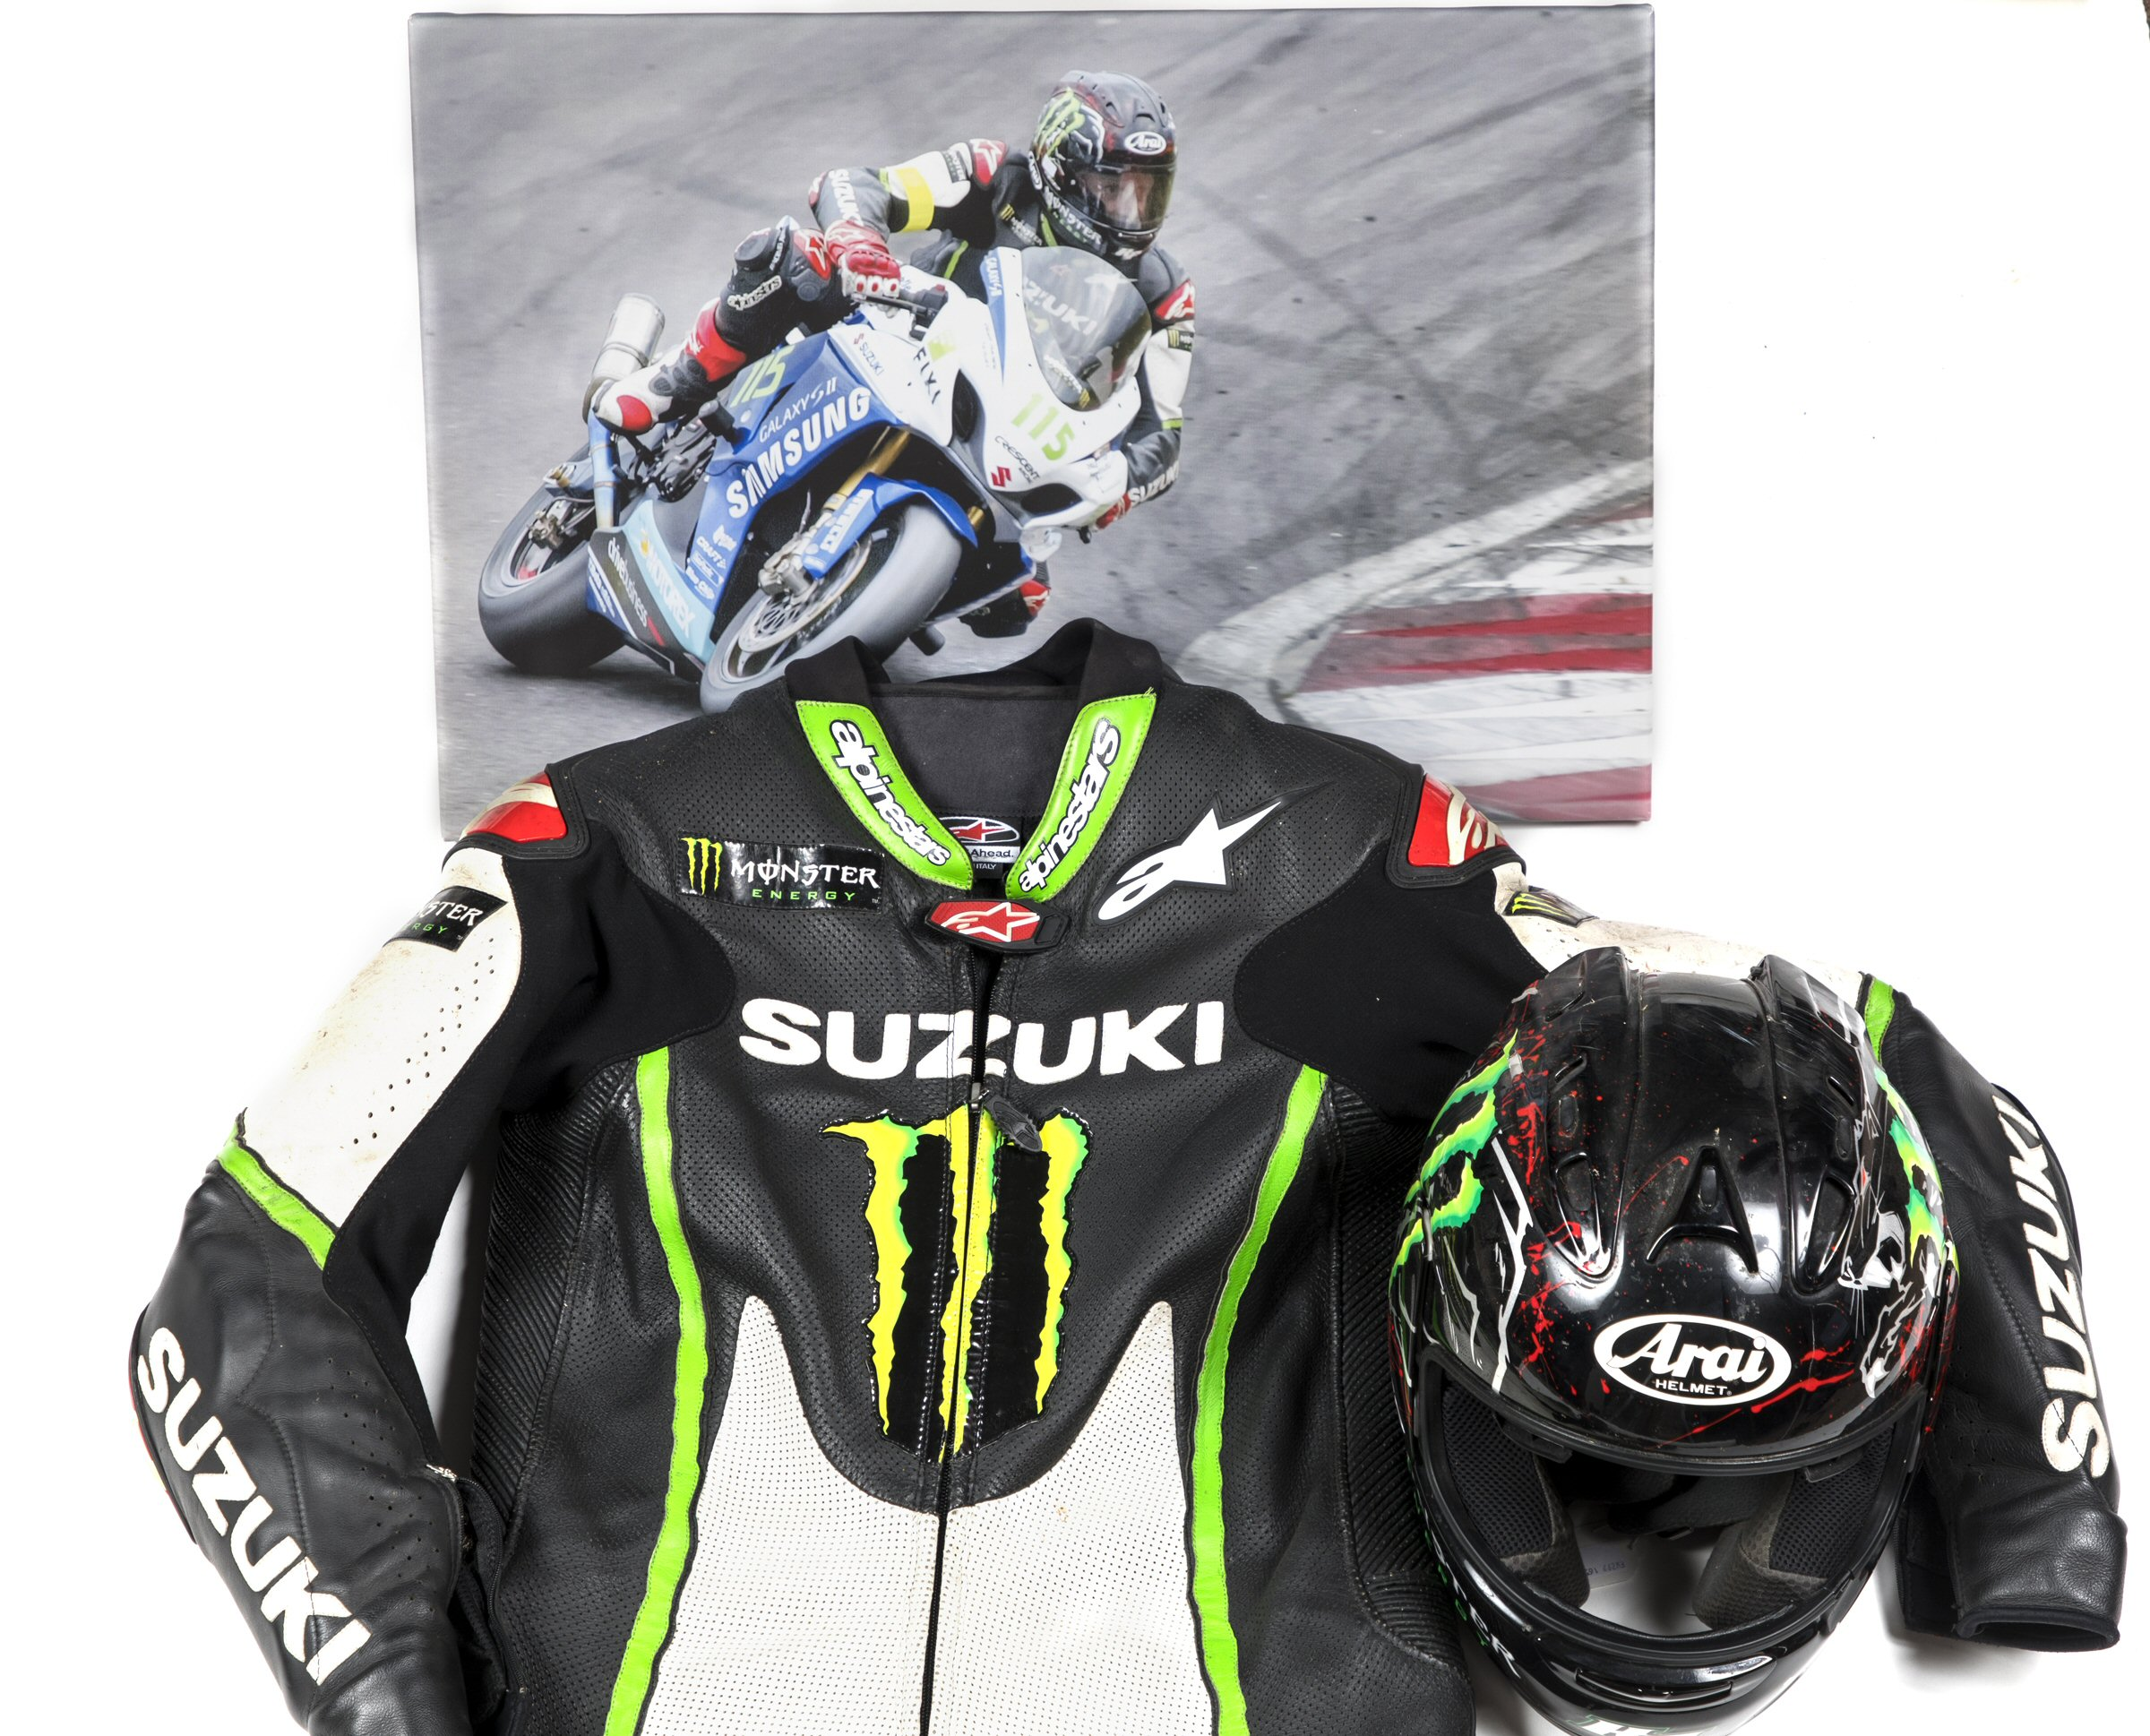 Keith Flint's motorcycle leathers and helmet, which will be sold at auction. (Cheffins/ PA)